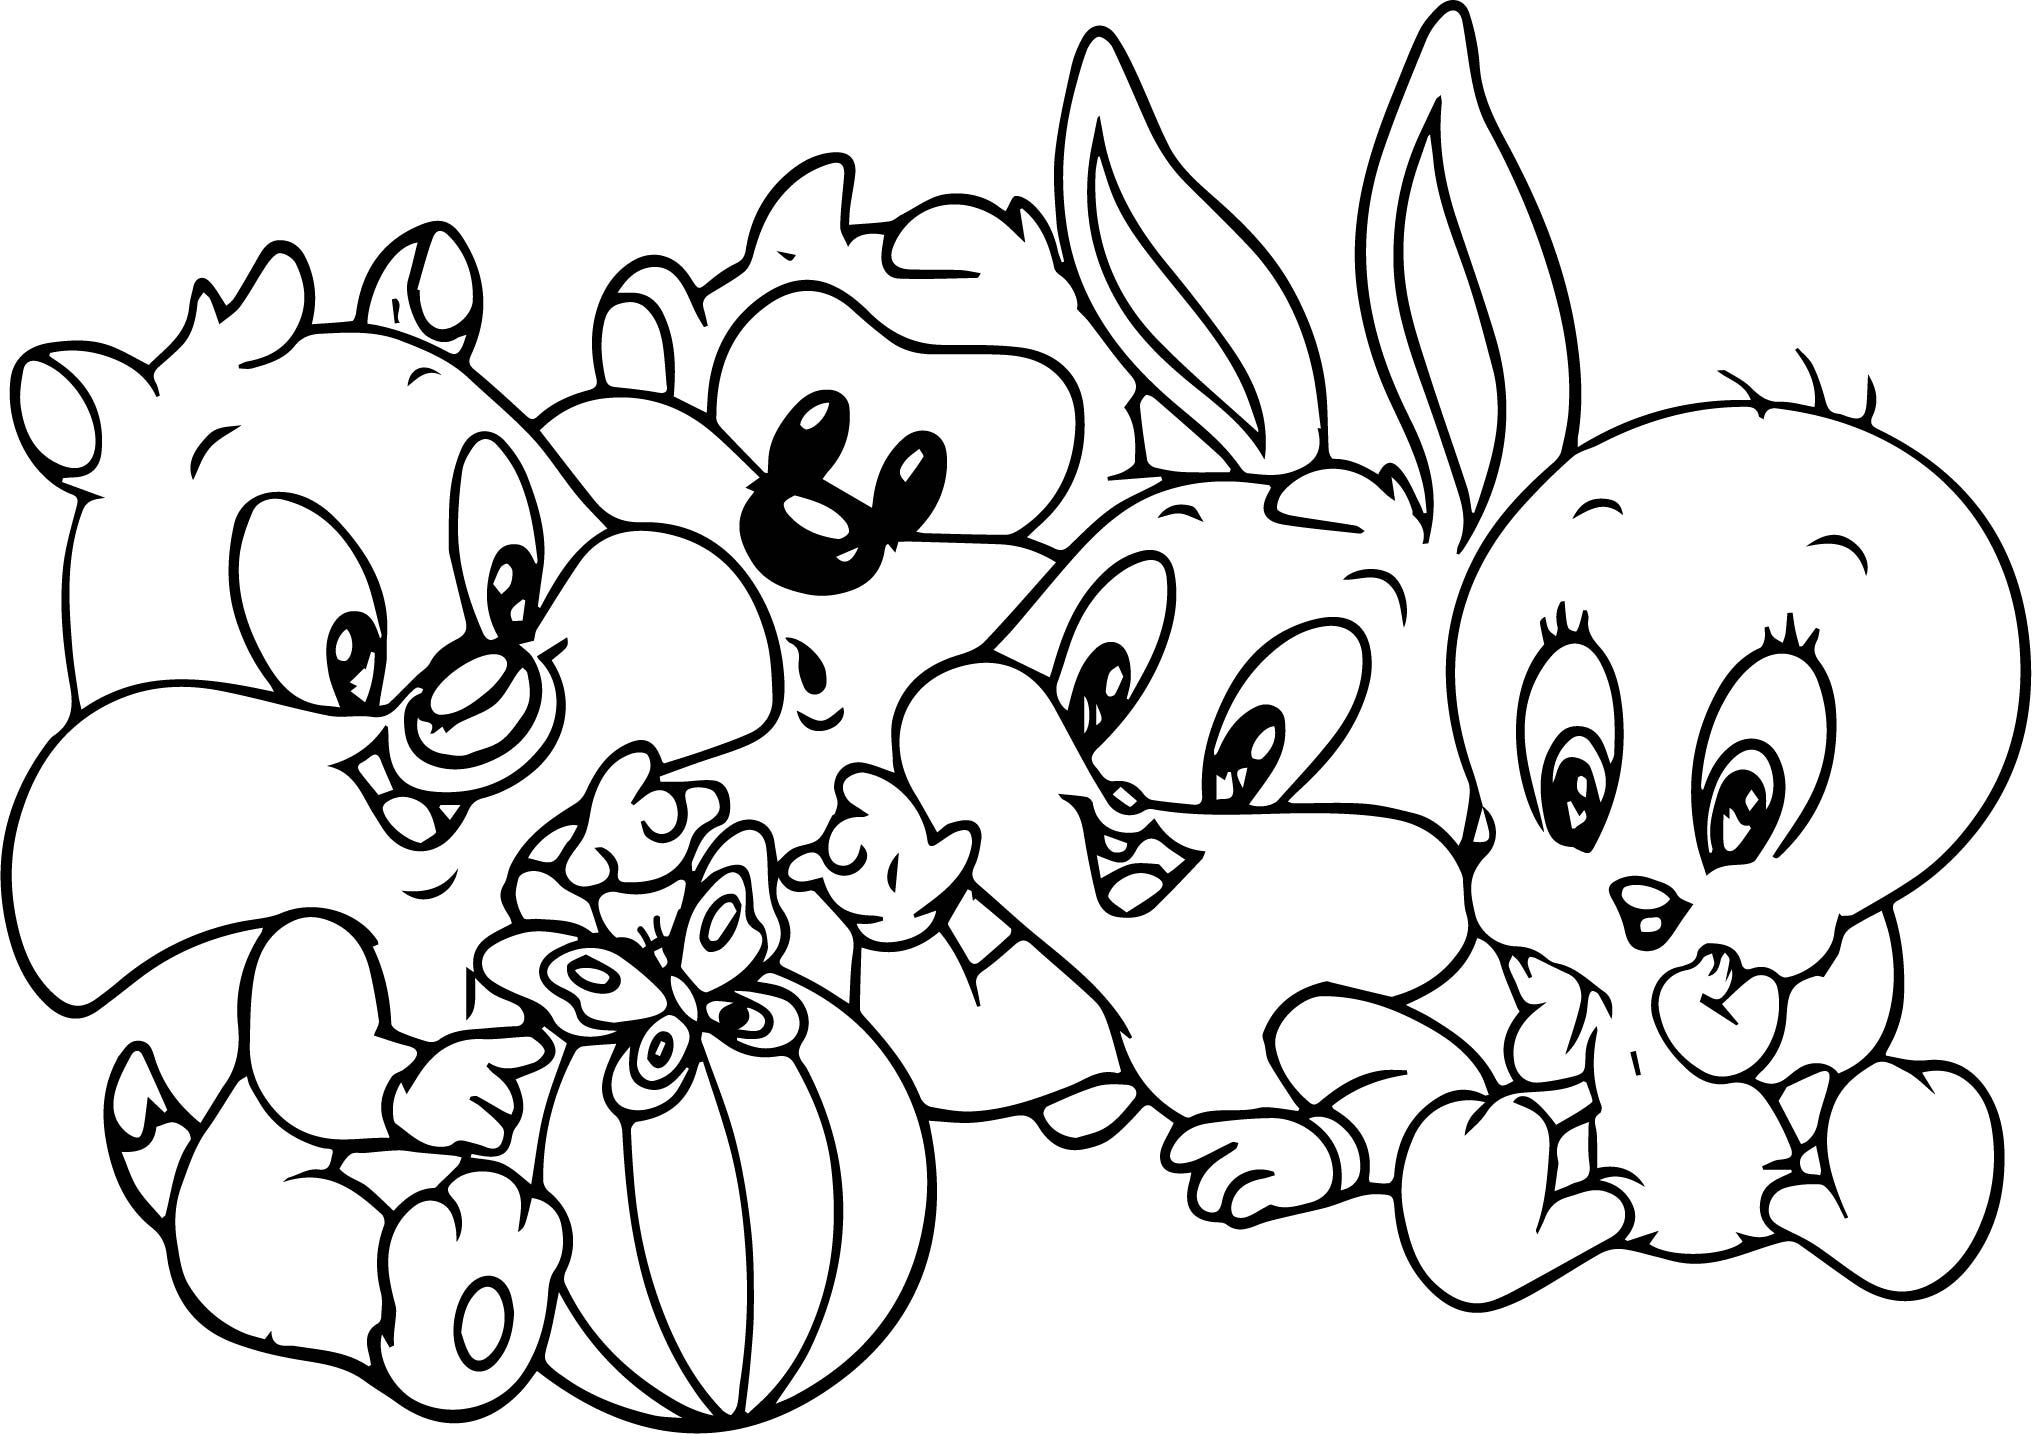 Bugs Bunny Baby Friends Coloring Pages | Malvorlage hase ...